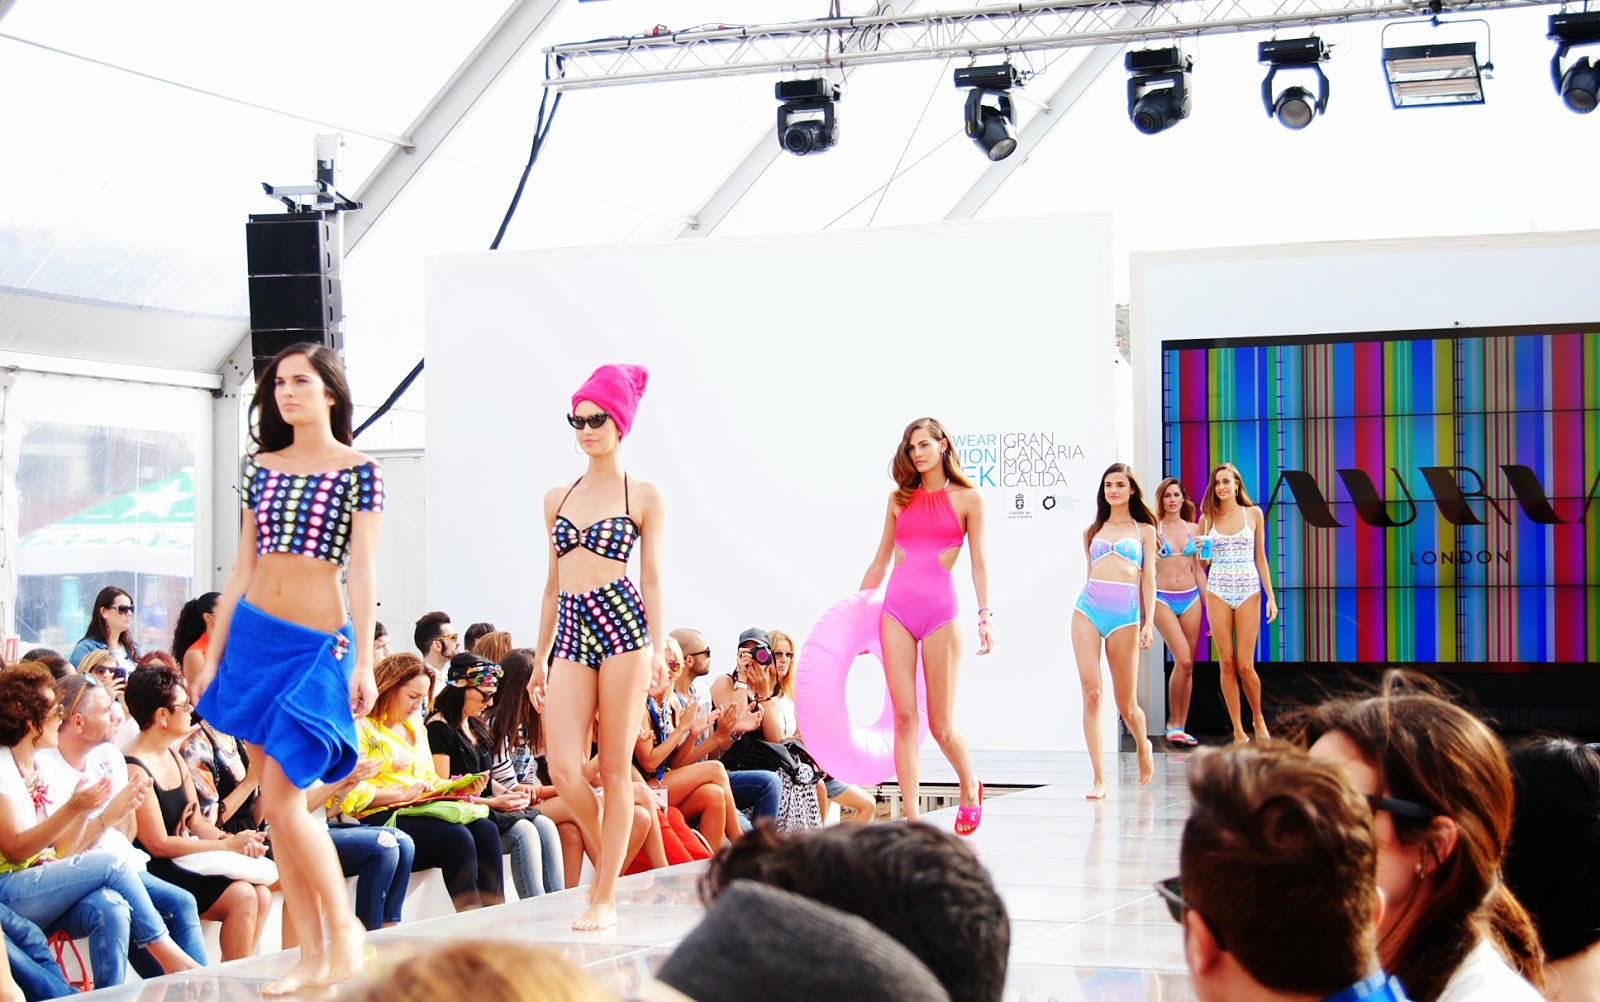 moda calida, gran canaria fashion week, gcmc, gcmodacalica2014, auria london, swimwear,